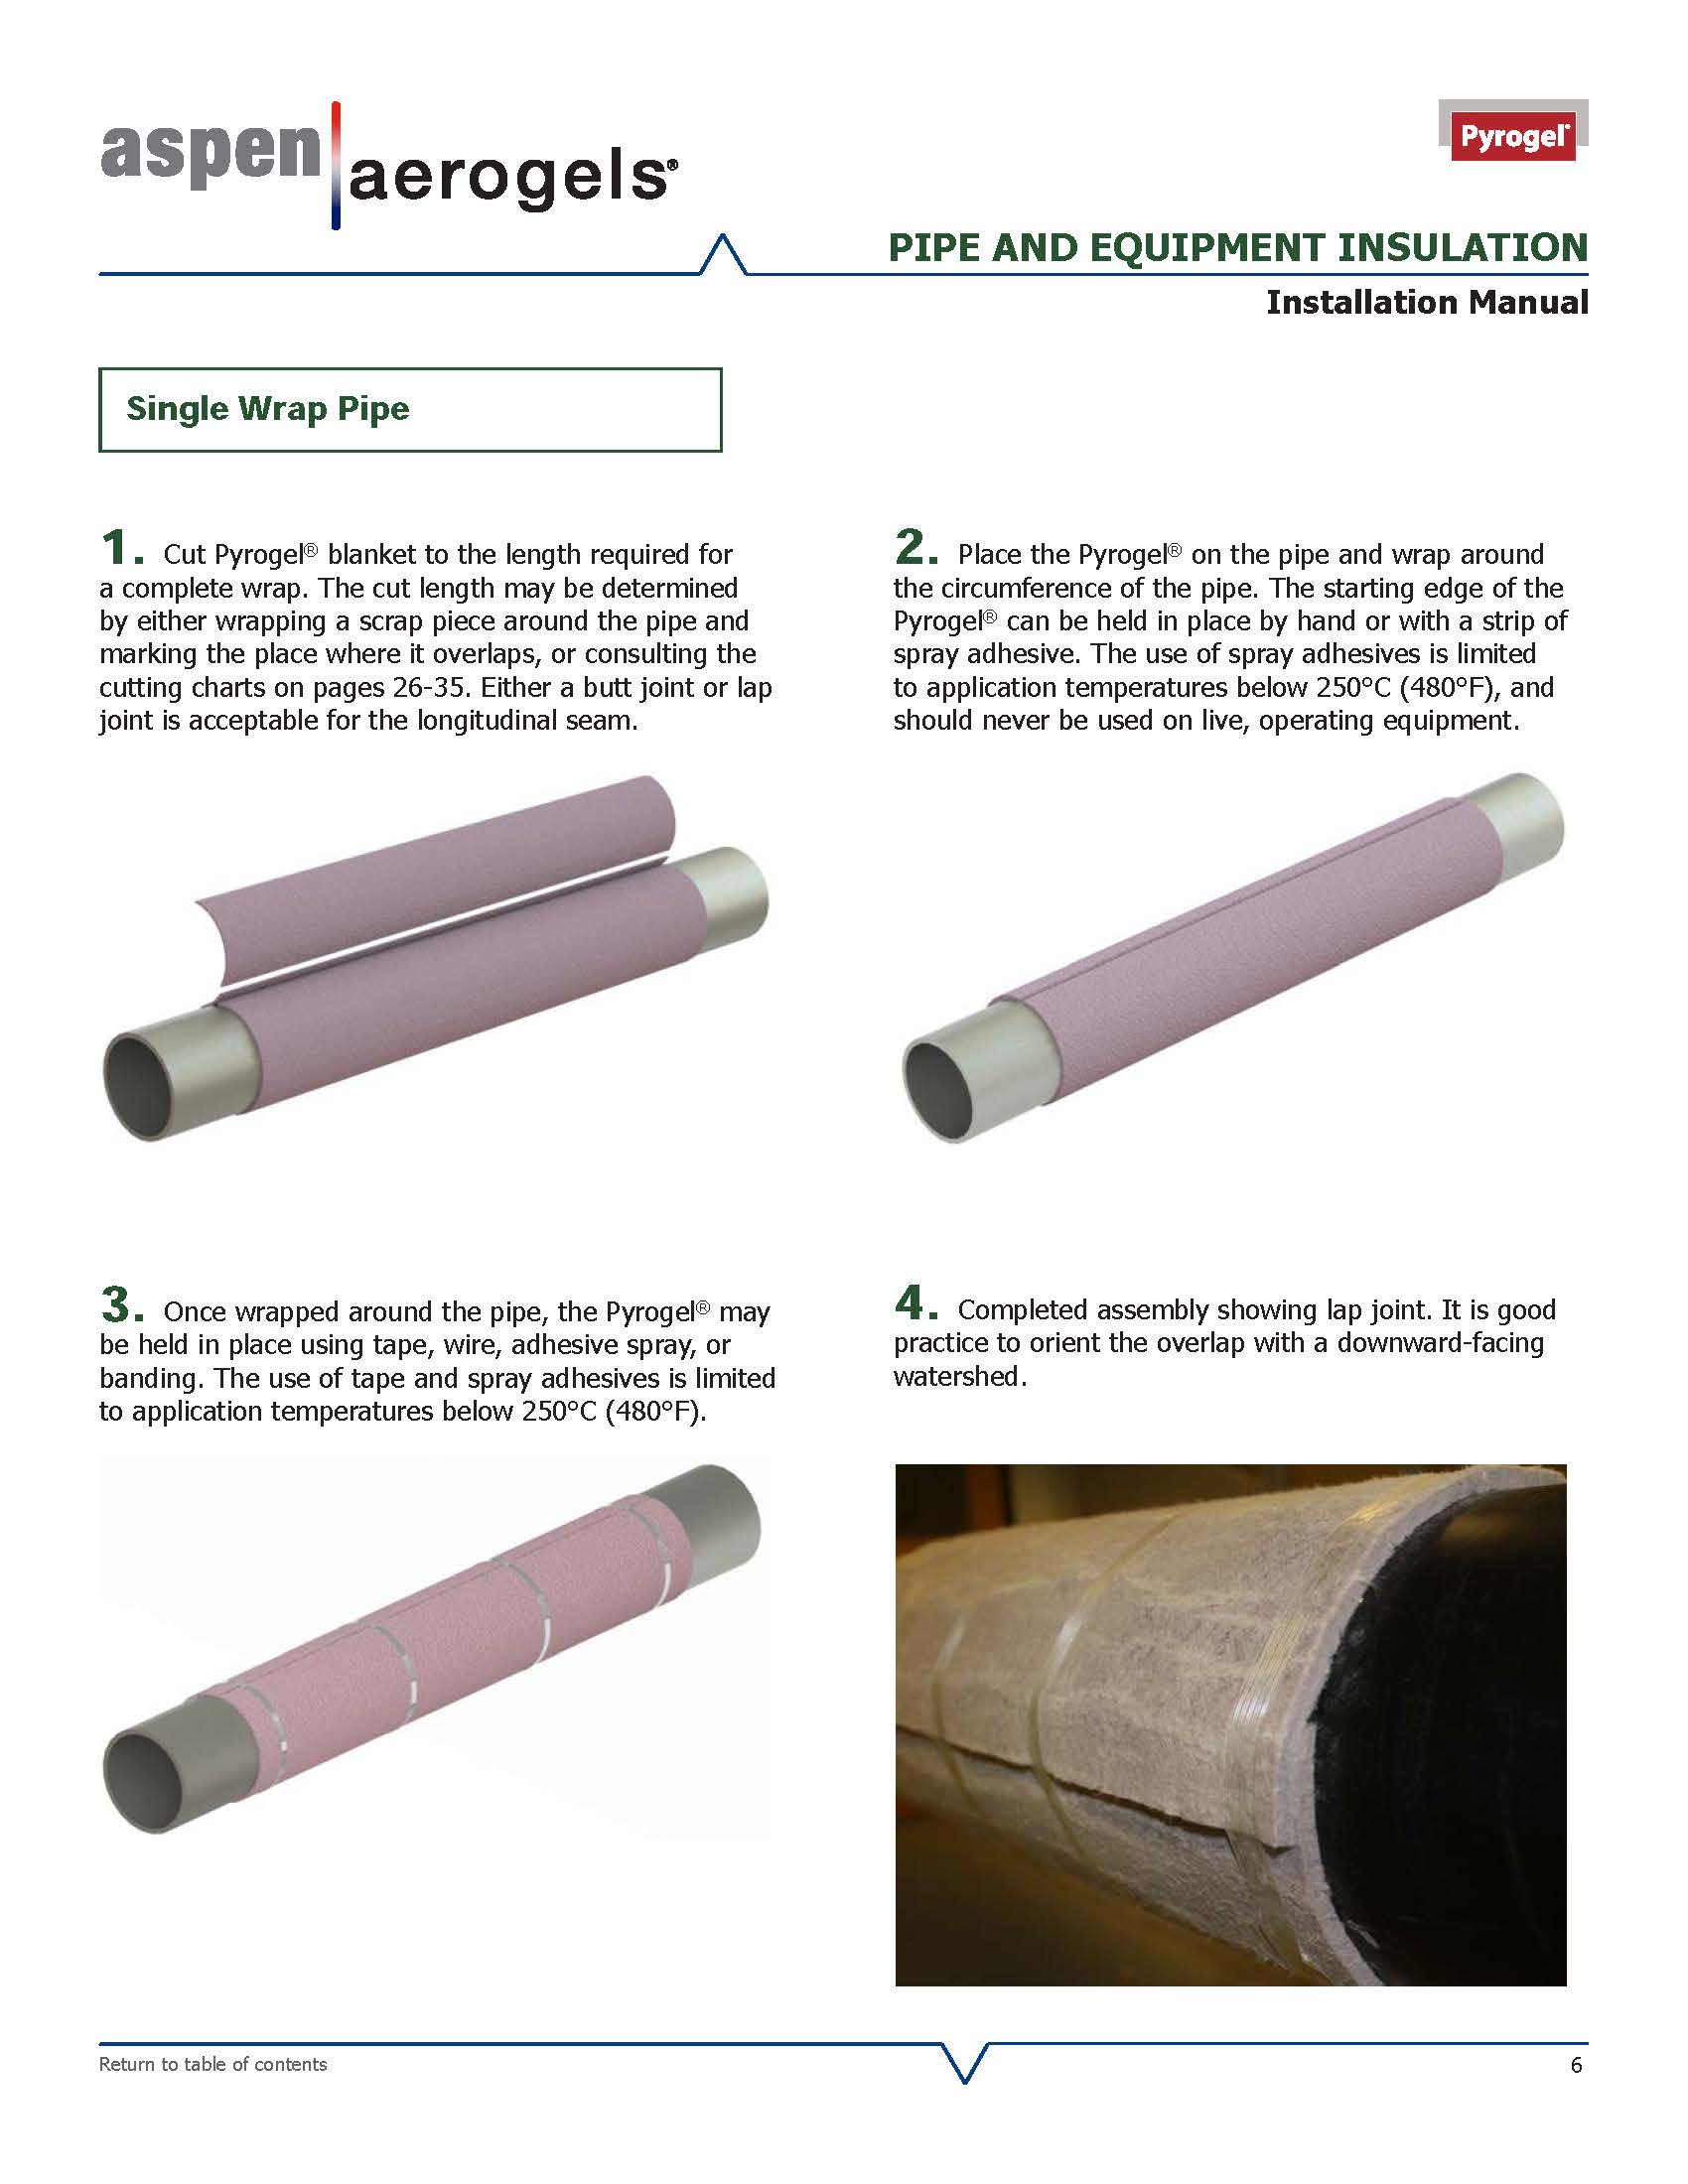 Pipe-and-Equipment-Install-Manual-Single-Wrap-Chapter.jpg